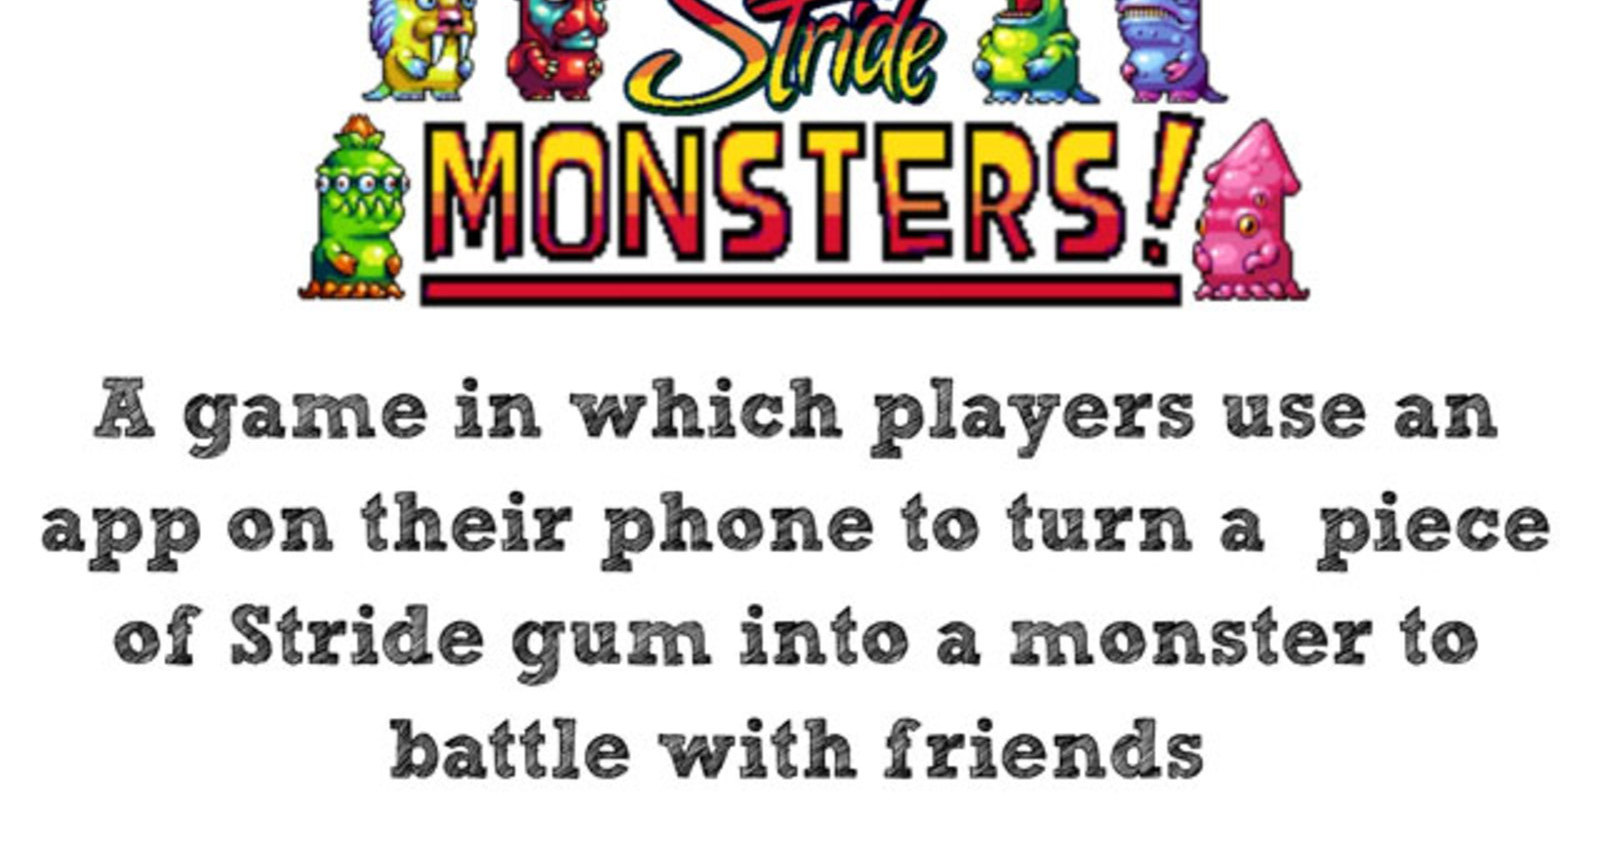 Stride Monsters